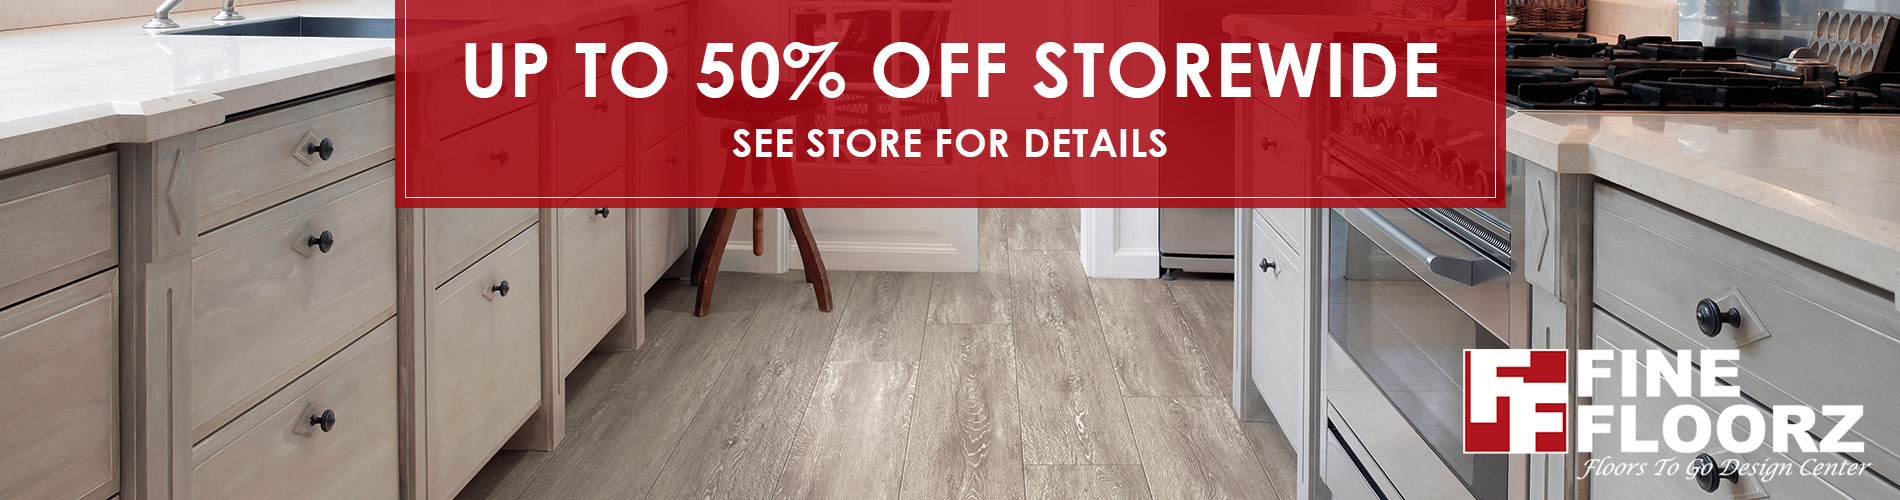 Up to 50% off storewide at Fine Floorz Floors To Go Design Center in Walnut Creek!  See store for details!